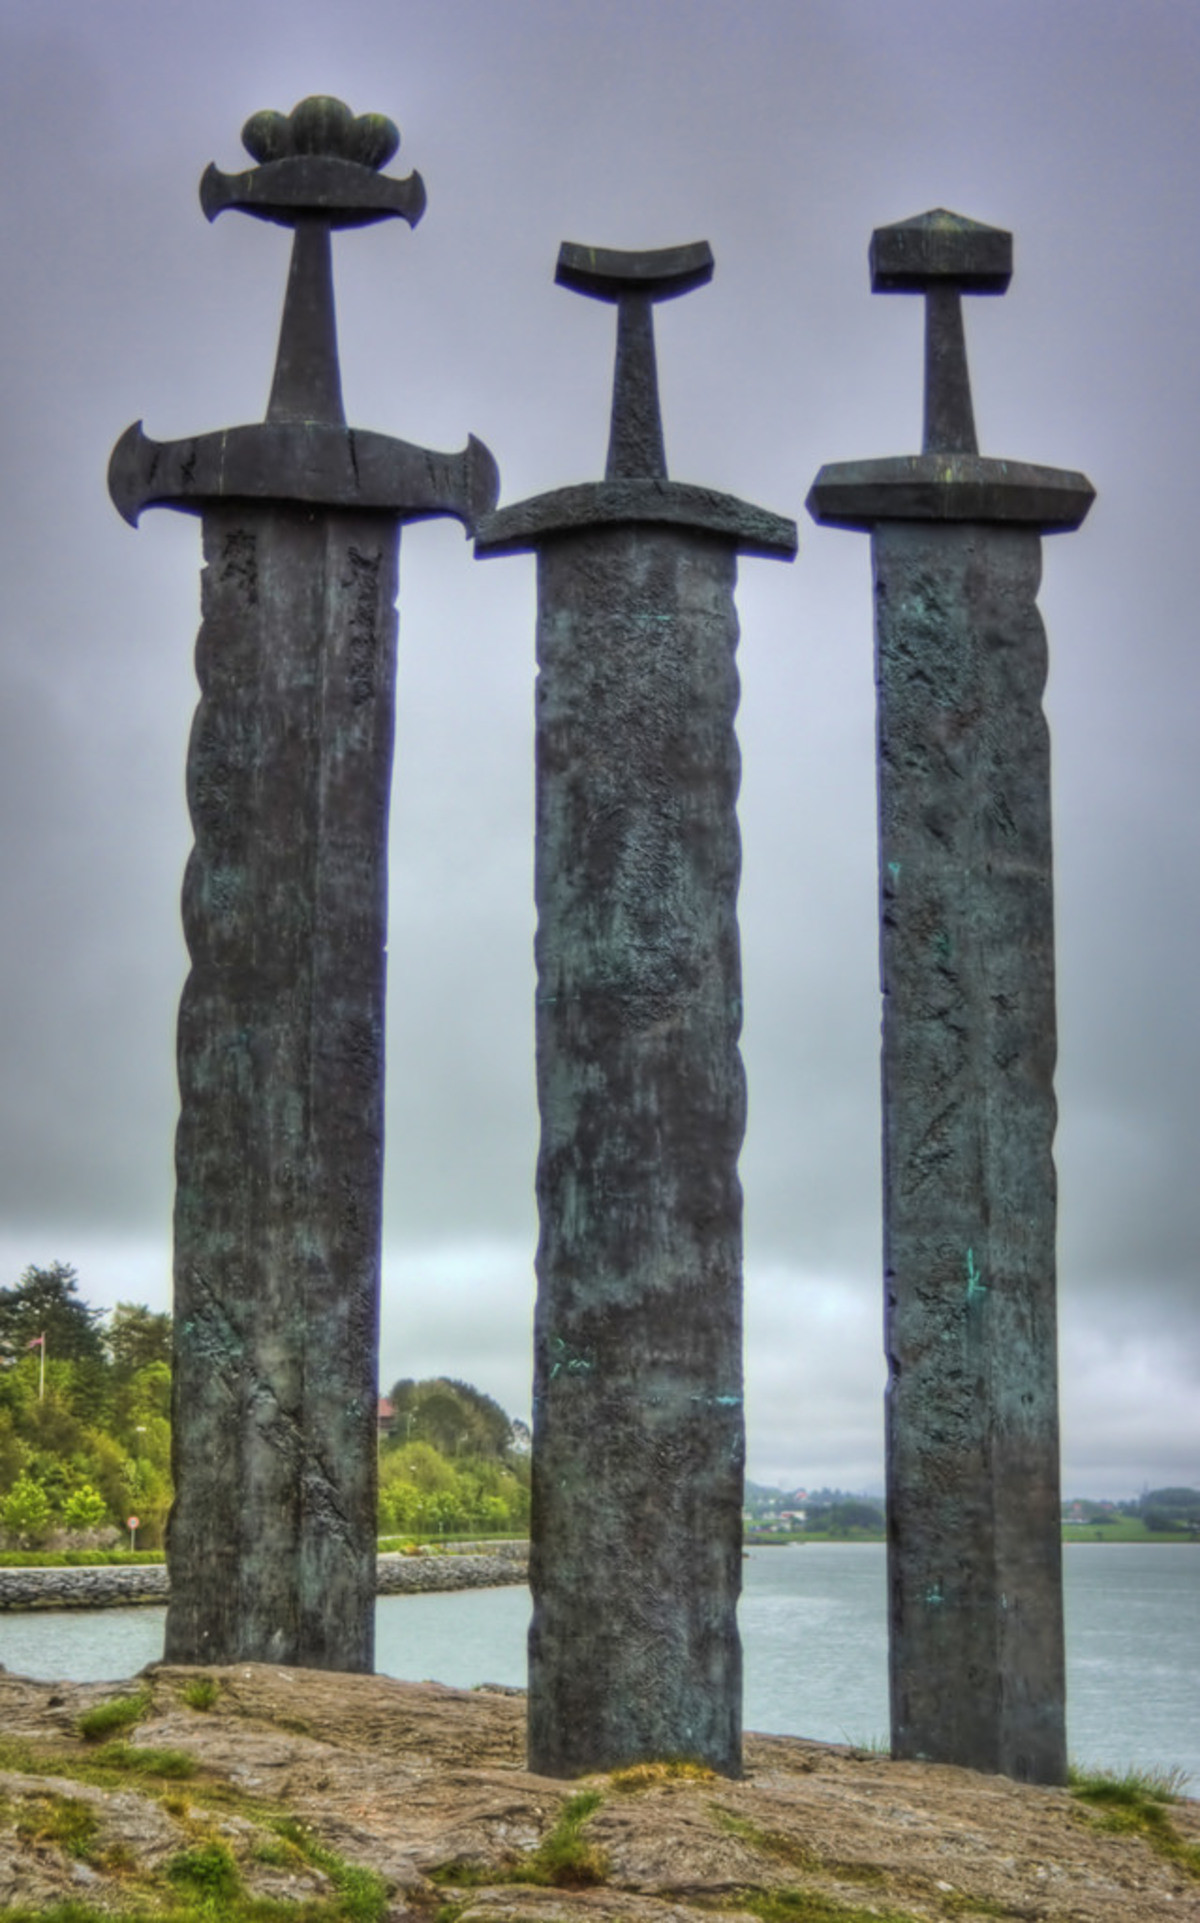 stabs. join list: StabbingTime (527 subs)Mention History.. For those who want too know what they represent: The 3 swords are monuments dedicated to the battle of Hafrsfjord that toke place there in 872 ac, and ended up